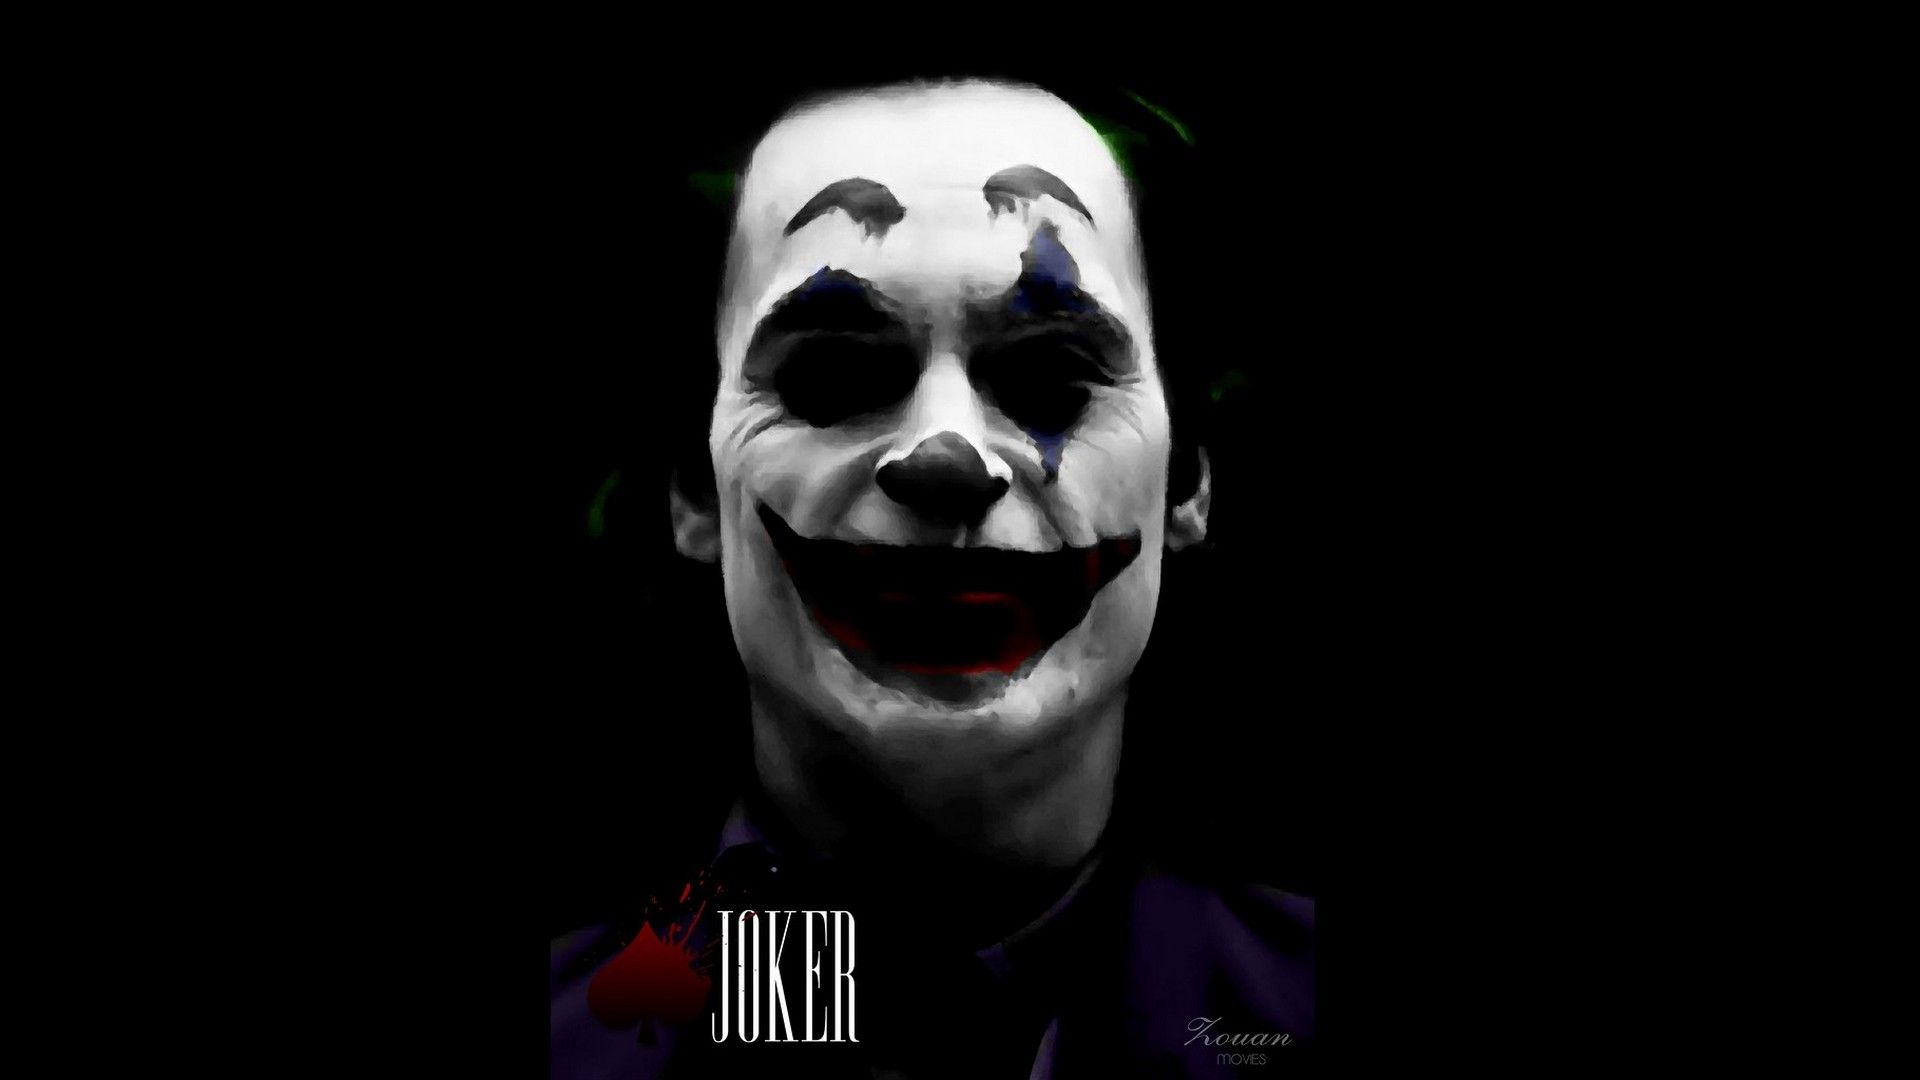 Joker 2019 Wallpaper Hd Mac Wallpaper Desktop Movie Posters Android Lock Screen